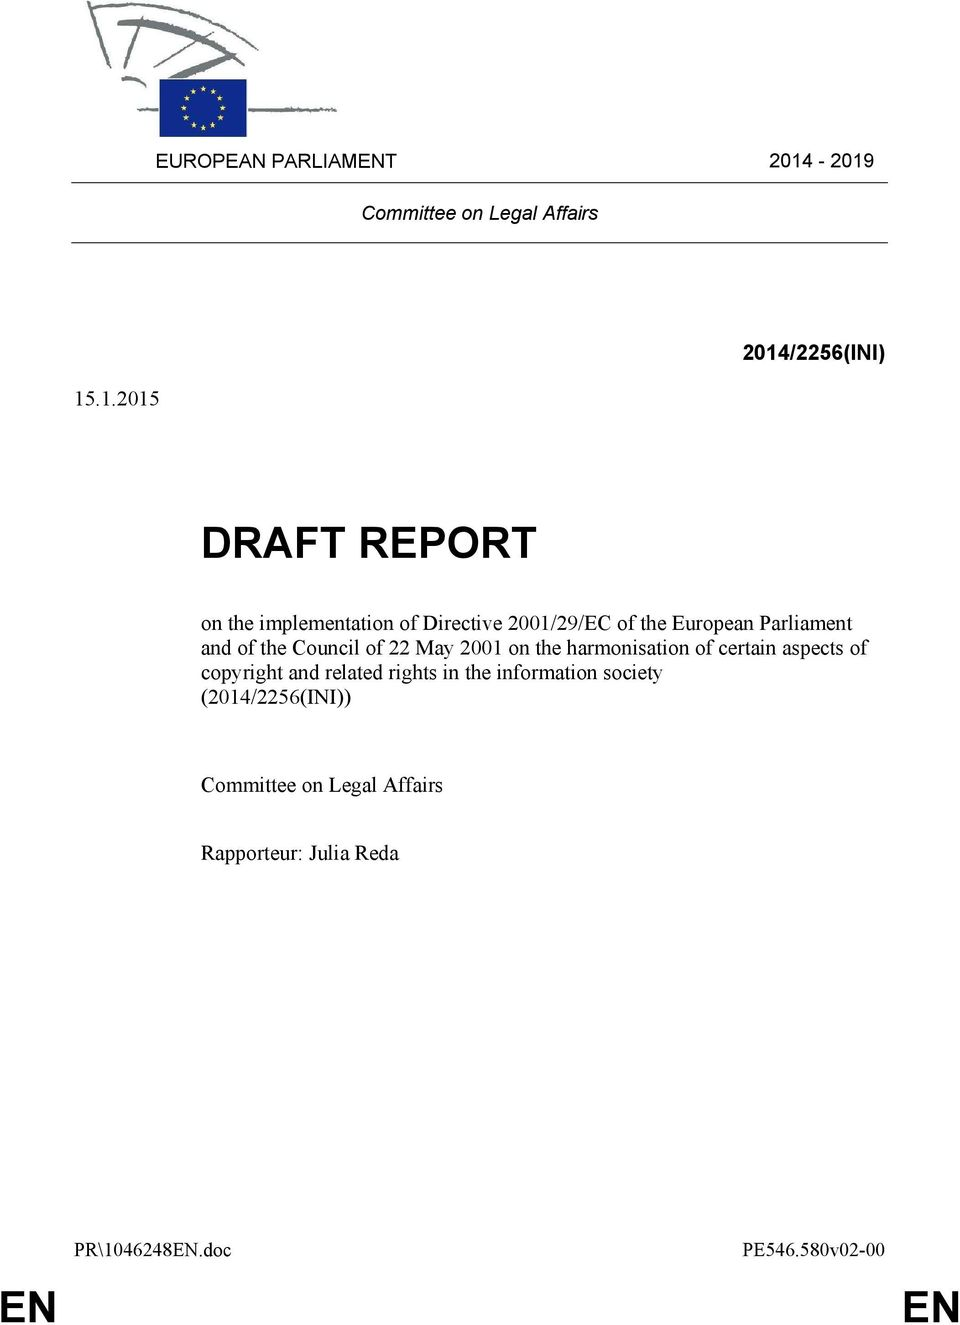 Directive 2001/29/EC of the European Parliament and of the Council of 22 May 2001 on the